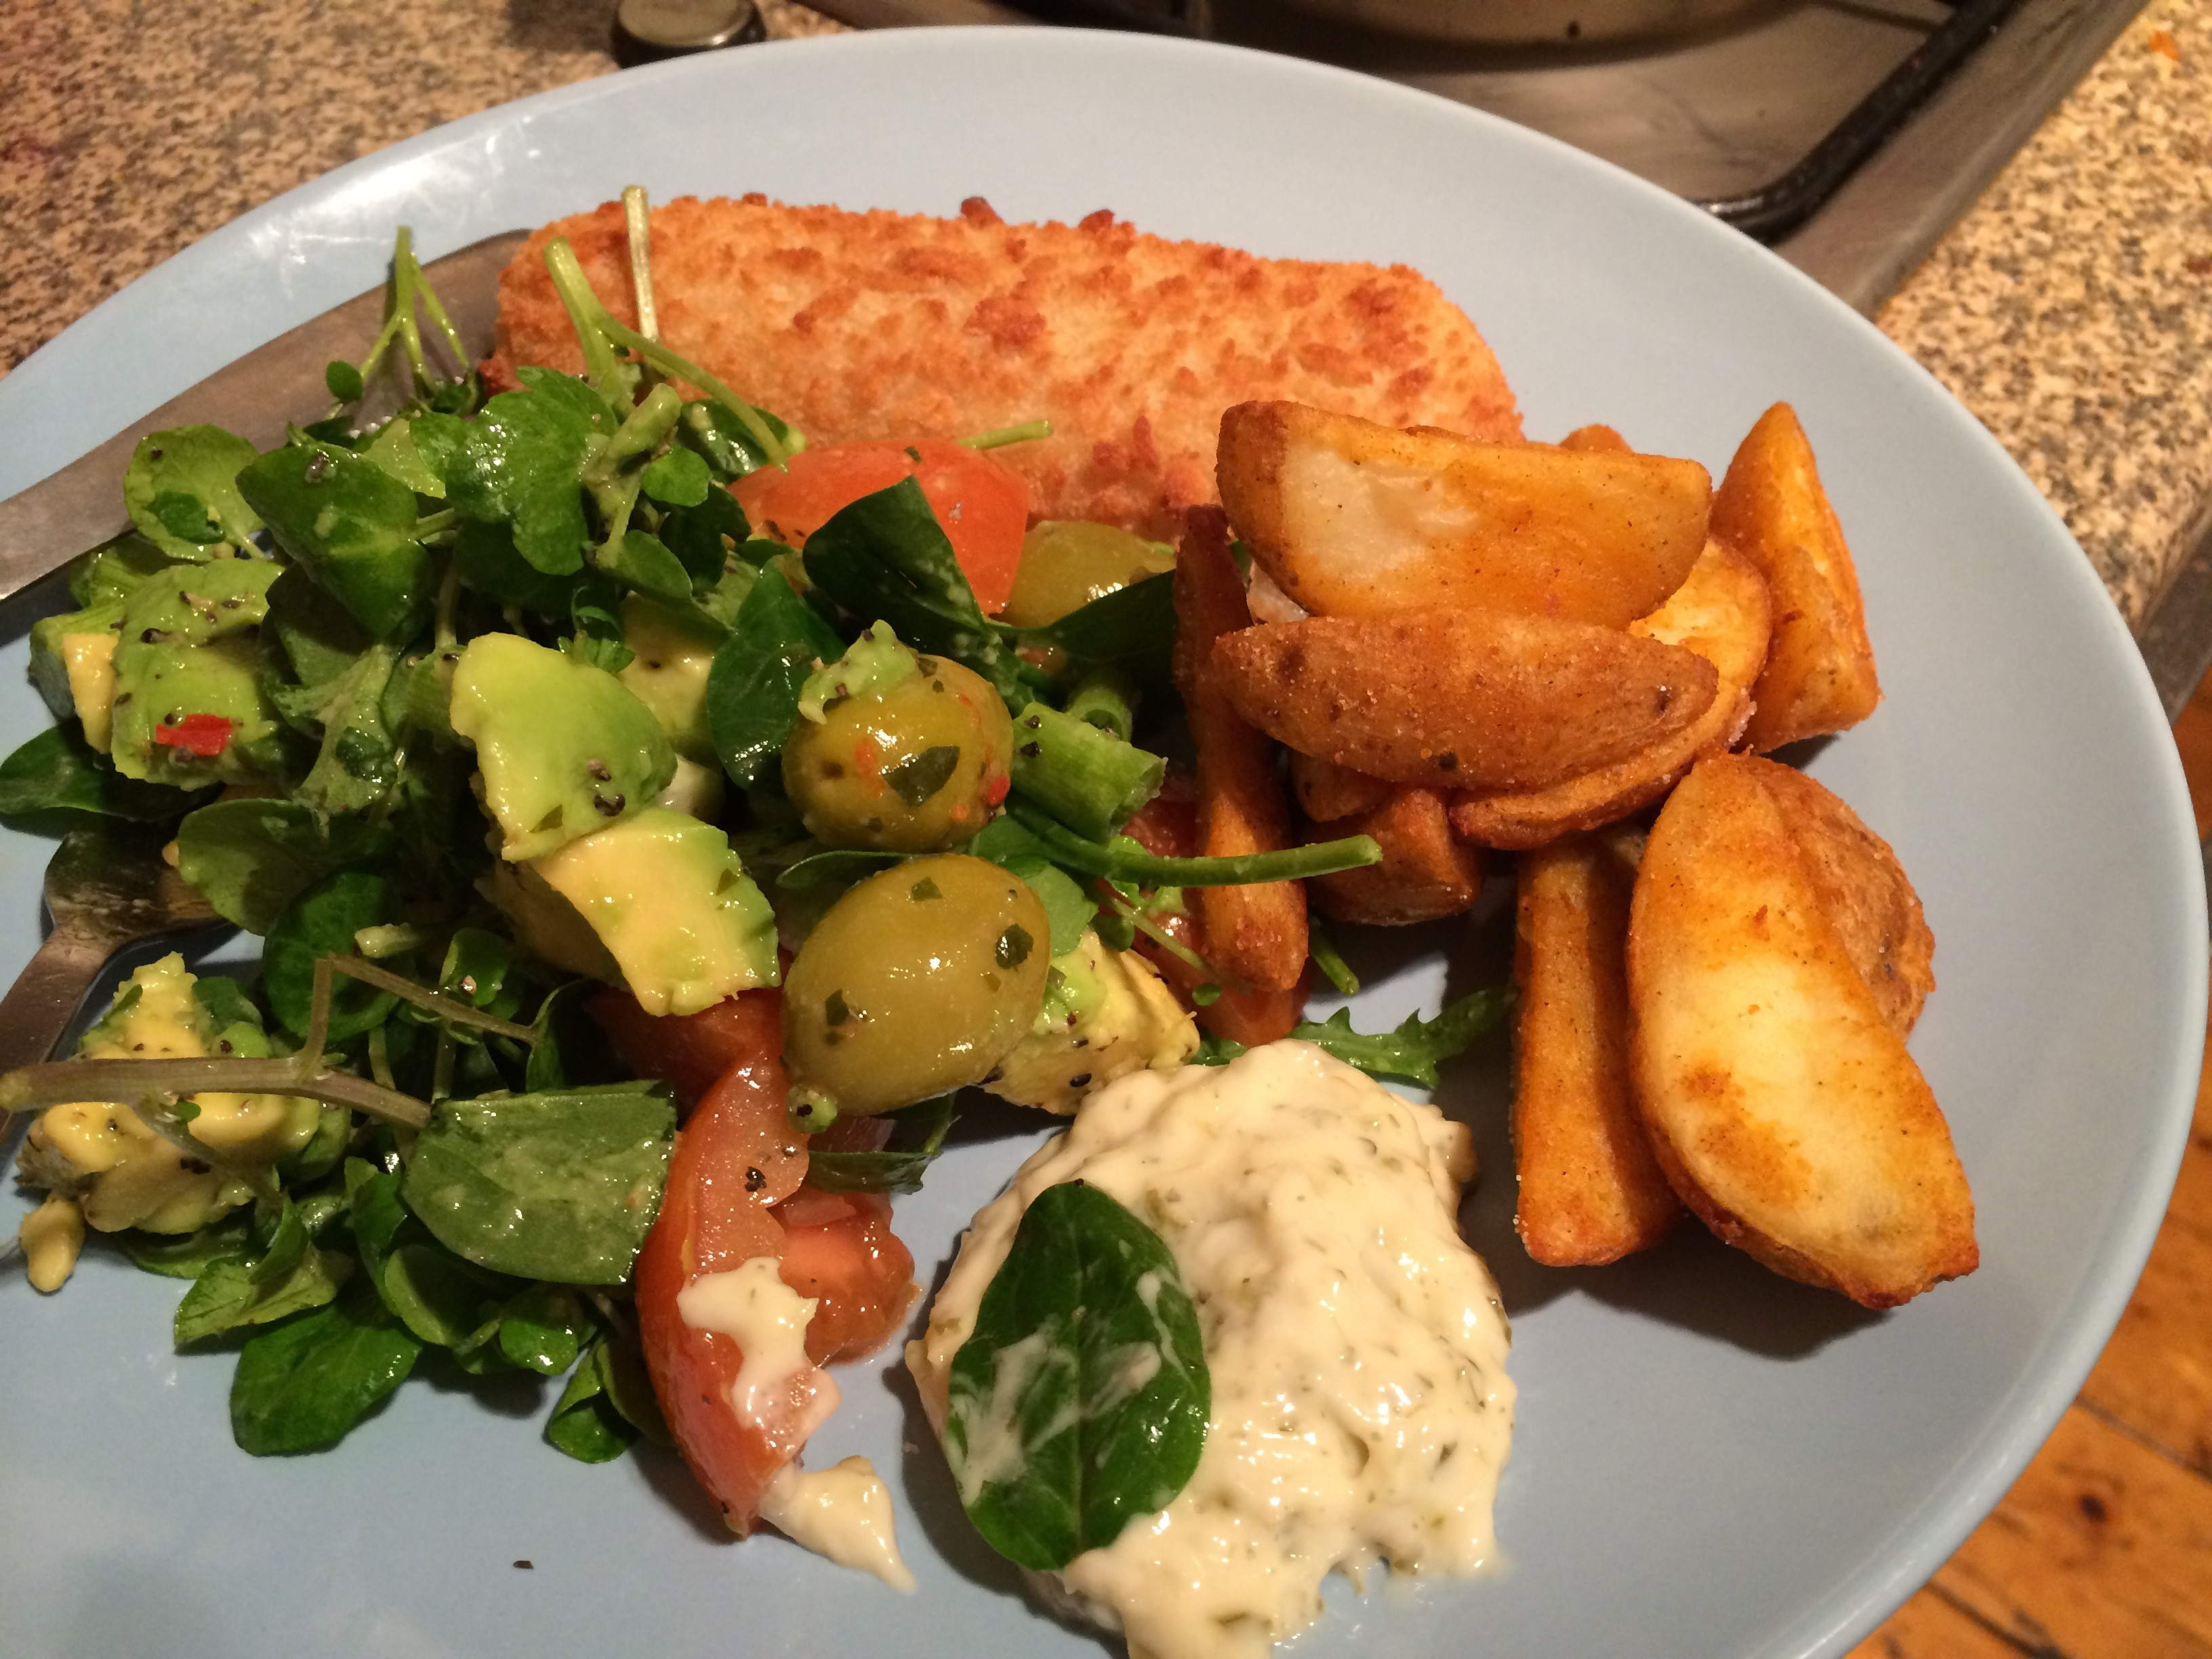 Joie de vivre with haddock  and chips